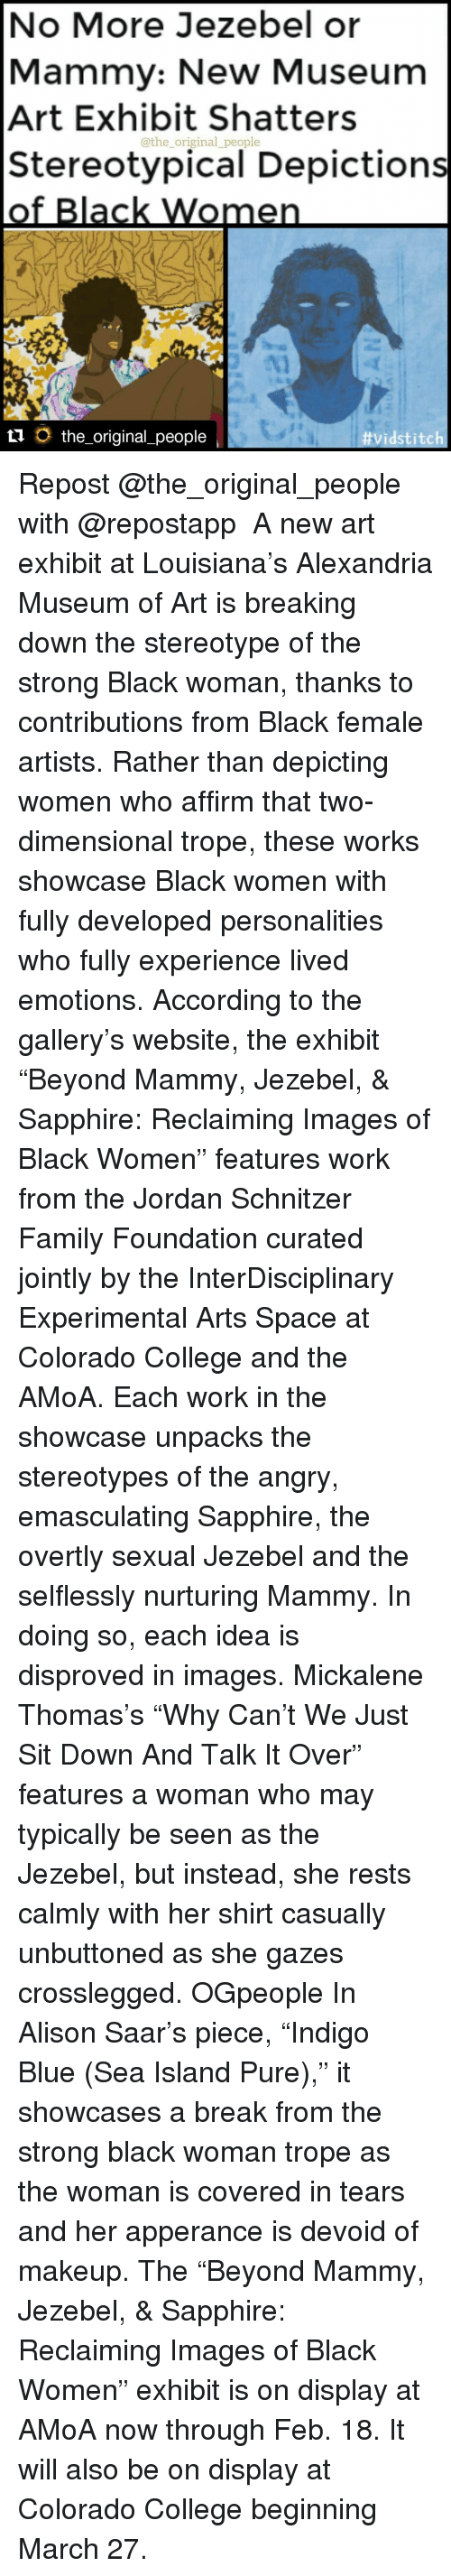 """colorado college: No More Jezebel or  Mammy: New Museum  Art Exhibit Shatters  @the original people  Stereotypical Depictions  of Black Women  ti the original people  vidst itch Repost @the_original_people with @repostapp ・・・ A new art exhibit at Louisiana's Alexandria Museum of Art is breaking down the stereotype of the strong Black woman, thanks to contributions from Black female artists. Rather than depicting women who affirm that two-dimensional trope, these works showcase Black women with fully developed personalities who fully experience lived emotions. According to the gallery's website, the exhibit """"Beyond Mammy, Jezebel, & Sapphire: Reclaiming Images of Black Women"""" features work from the Jordan Schnitzer Family Foundation curated jointly by the InterDisciplinary Experimental Arts Space at Colorado College and the AMoA. Each work in the showcase unpacks the stereotypes of the angry, emasculating Sapphire, the overtly sexual Jezebel and the selflessly nurturing Mammy. In doing so, each idea is disproved in images. Mickalene Thomas's """"Why Can't We Just Sit Down And Talk It Over"""" features a woman who may typically be seen as the Jezebel, but instead, she rests calmly with her shirt casually unbuttoned as she gazes crosslegged. OGpeople In Alison Saar's piece, """"Indigo Blue (Sea Island Pure),"""" it showcases a break from the strong black woman trope as the woman is covered in tears and her apperance is devoid of makeup. The """"Beyond Mammy, Jezebel, & Sapphire: Reclaiming Images of Black Women"""" exhibit is on display at AMoA now through Feb. 18. It will also be on display at Colorado College beginning March 27."""